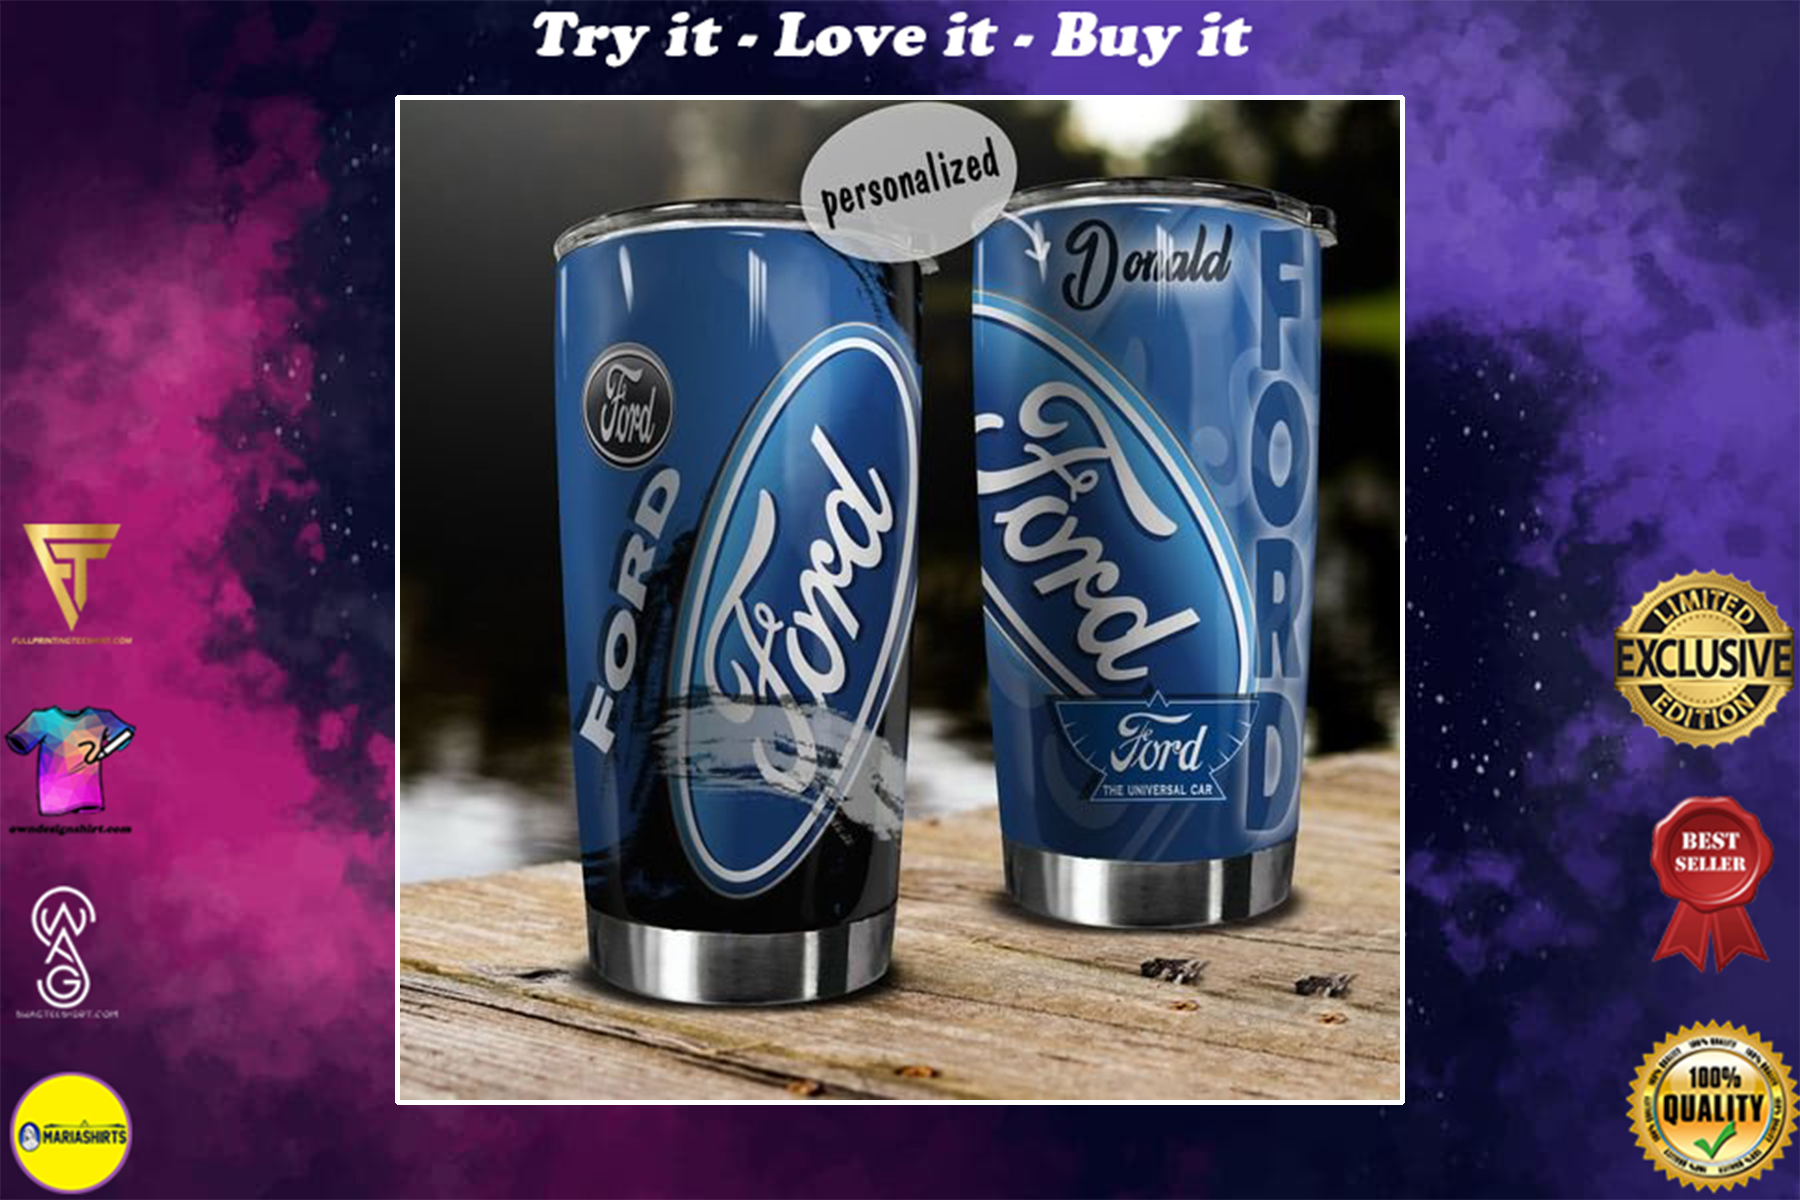 personalized name ford motor company tumbler